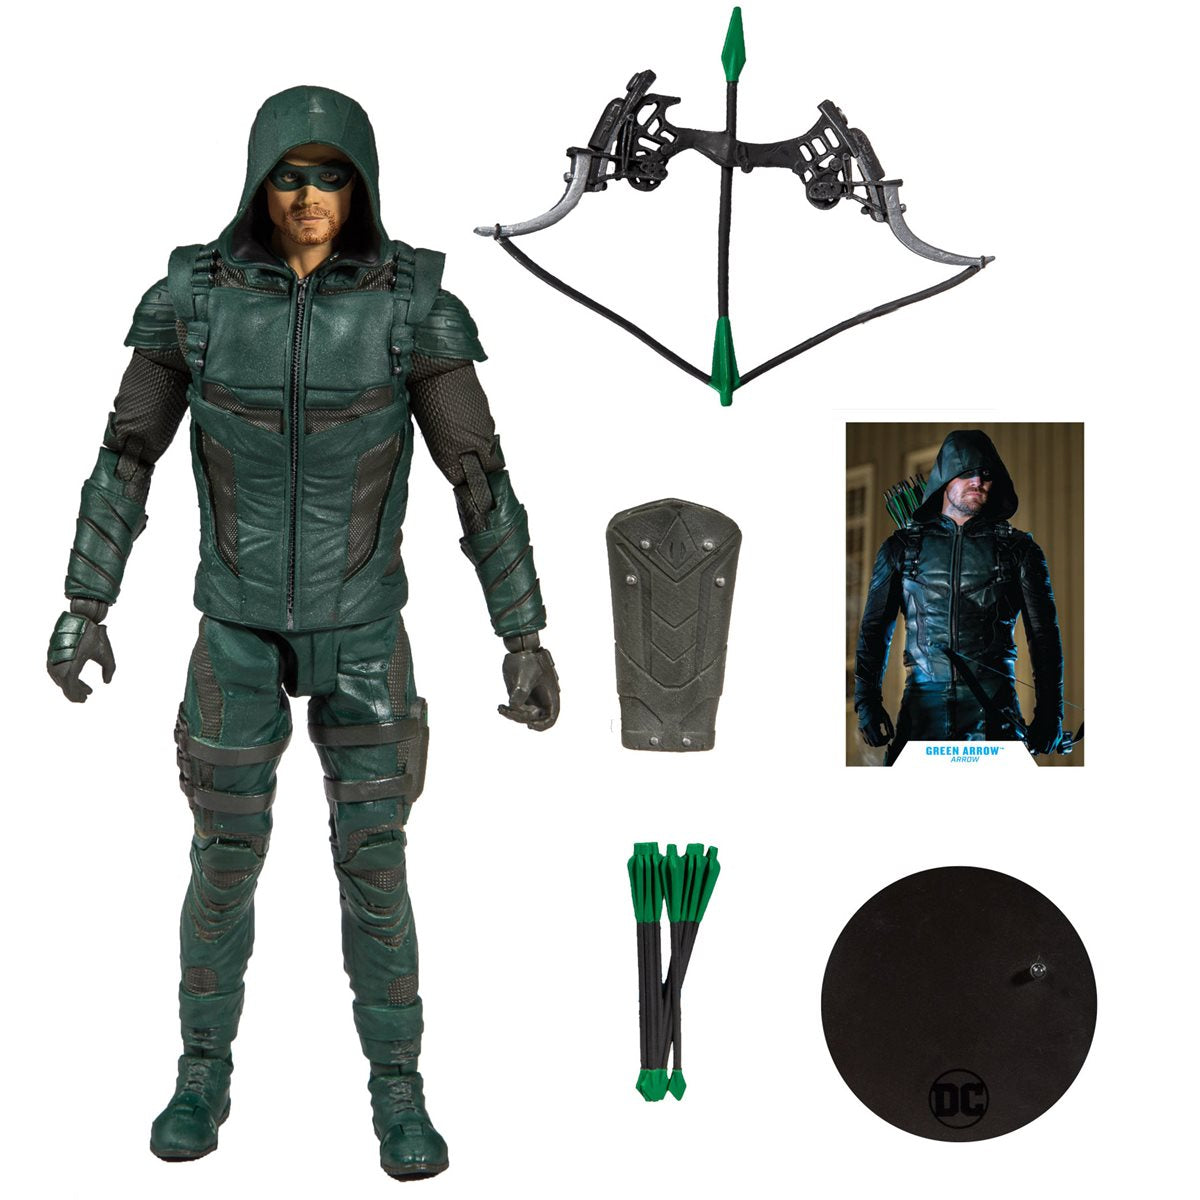 Green Arrow TV Series 7-Inch Action Figure Mcfarlane DC Comics Wave 1